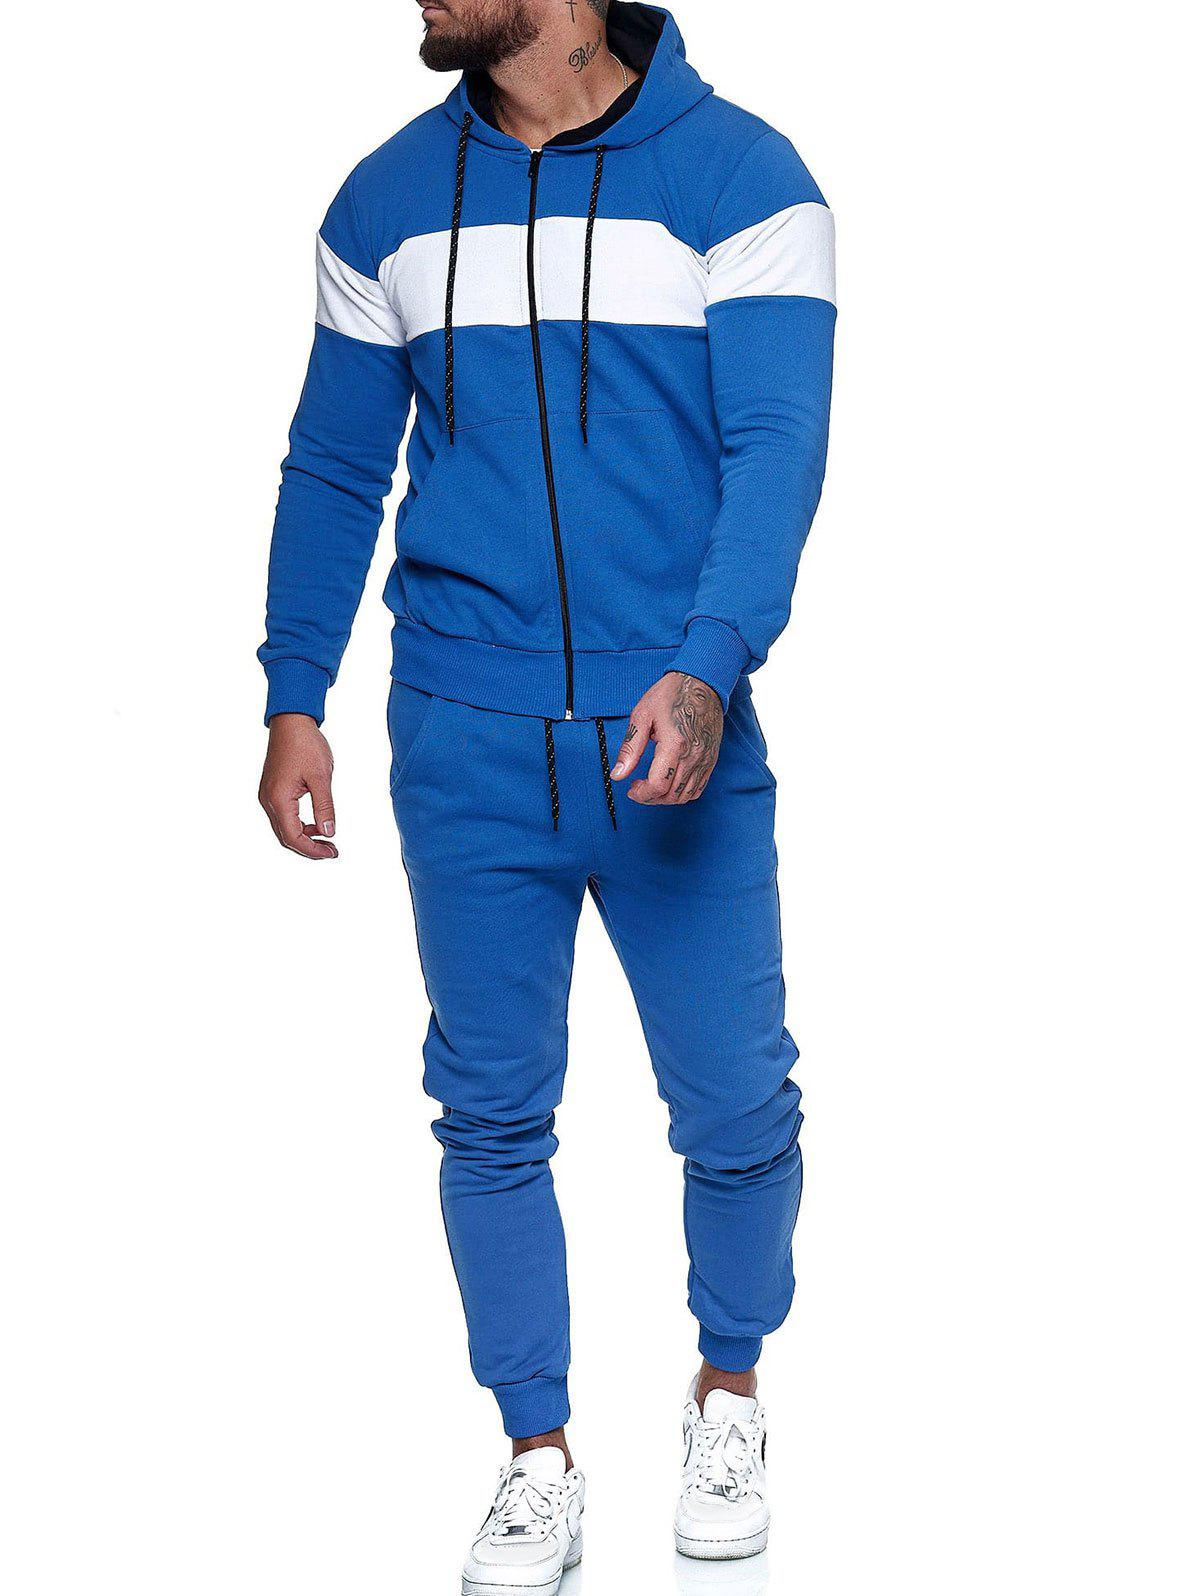 Contrast Zip Up Hoodie Jacket and Pants Sports Two Piece Set - BLUE L